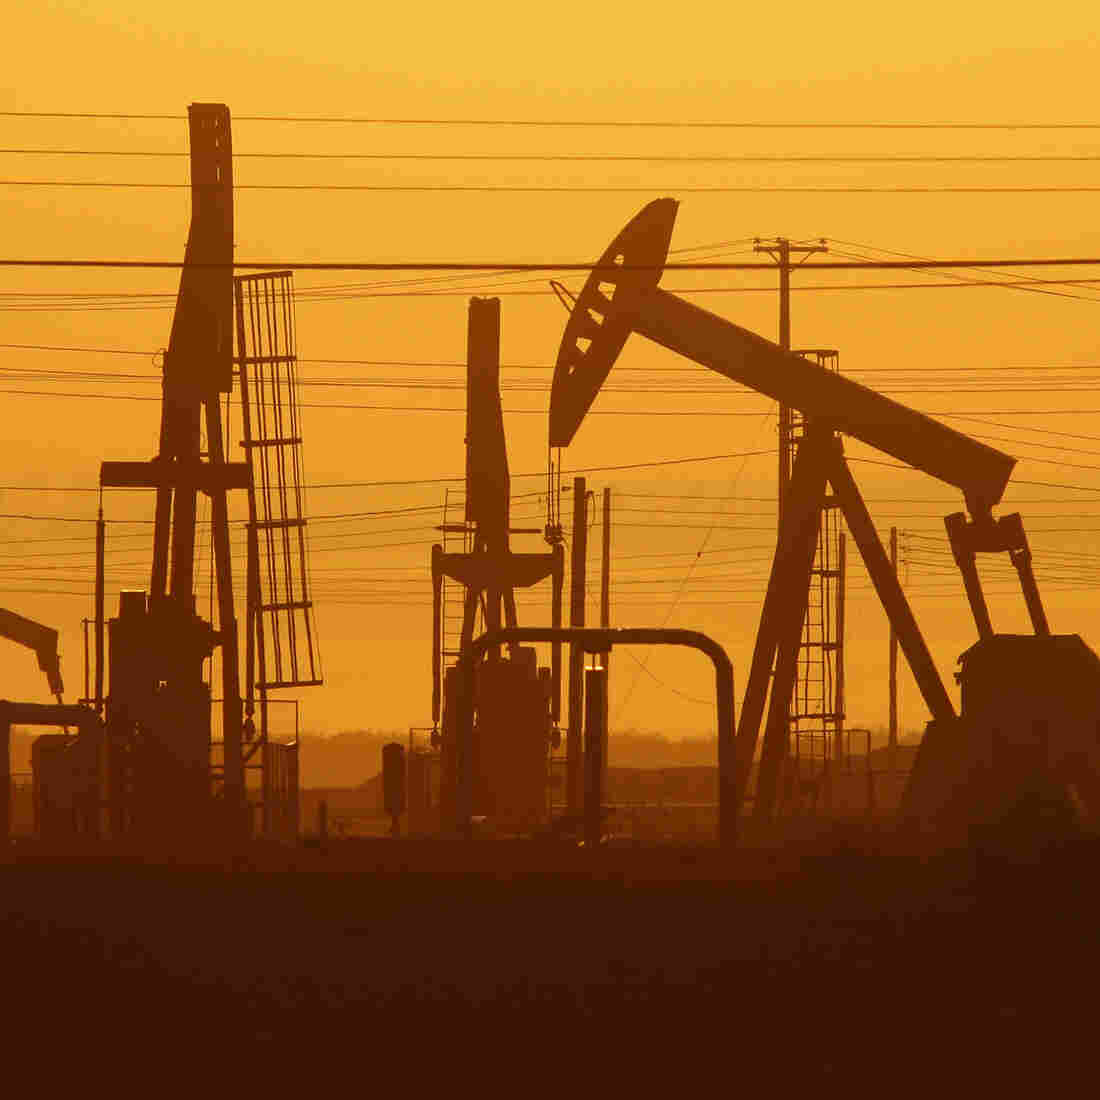 With U.S. Oil Supply Climbing, Some Call For End To Export Ban